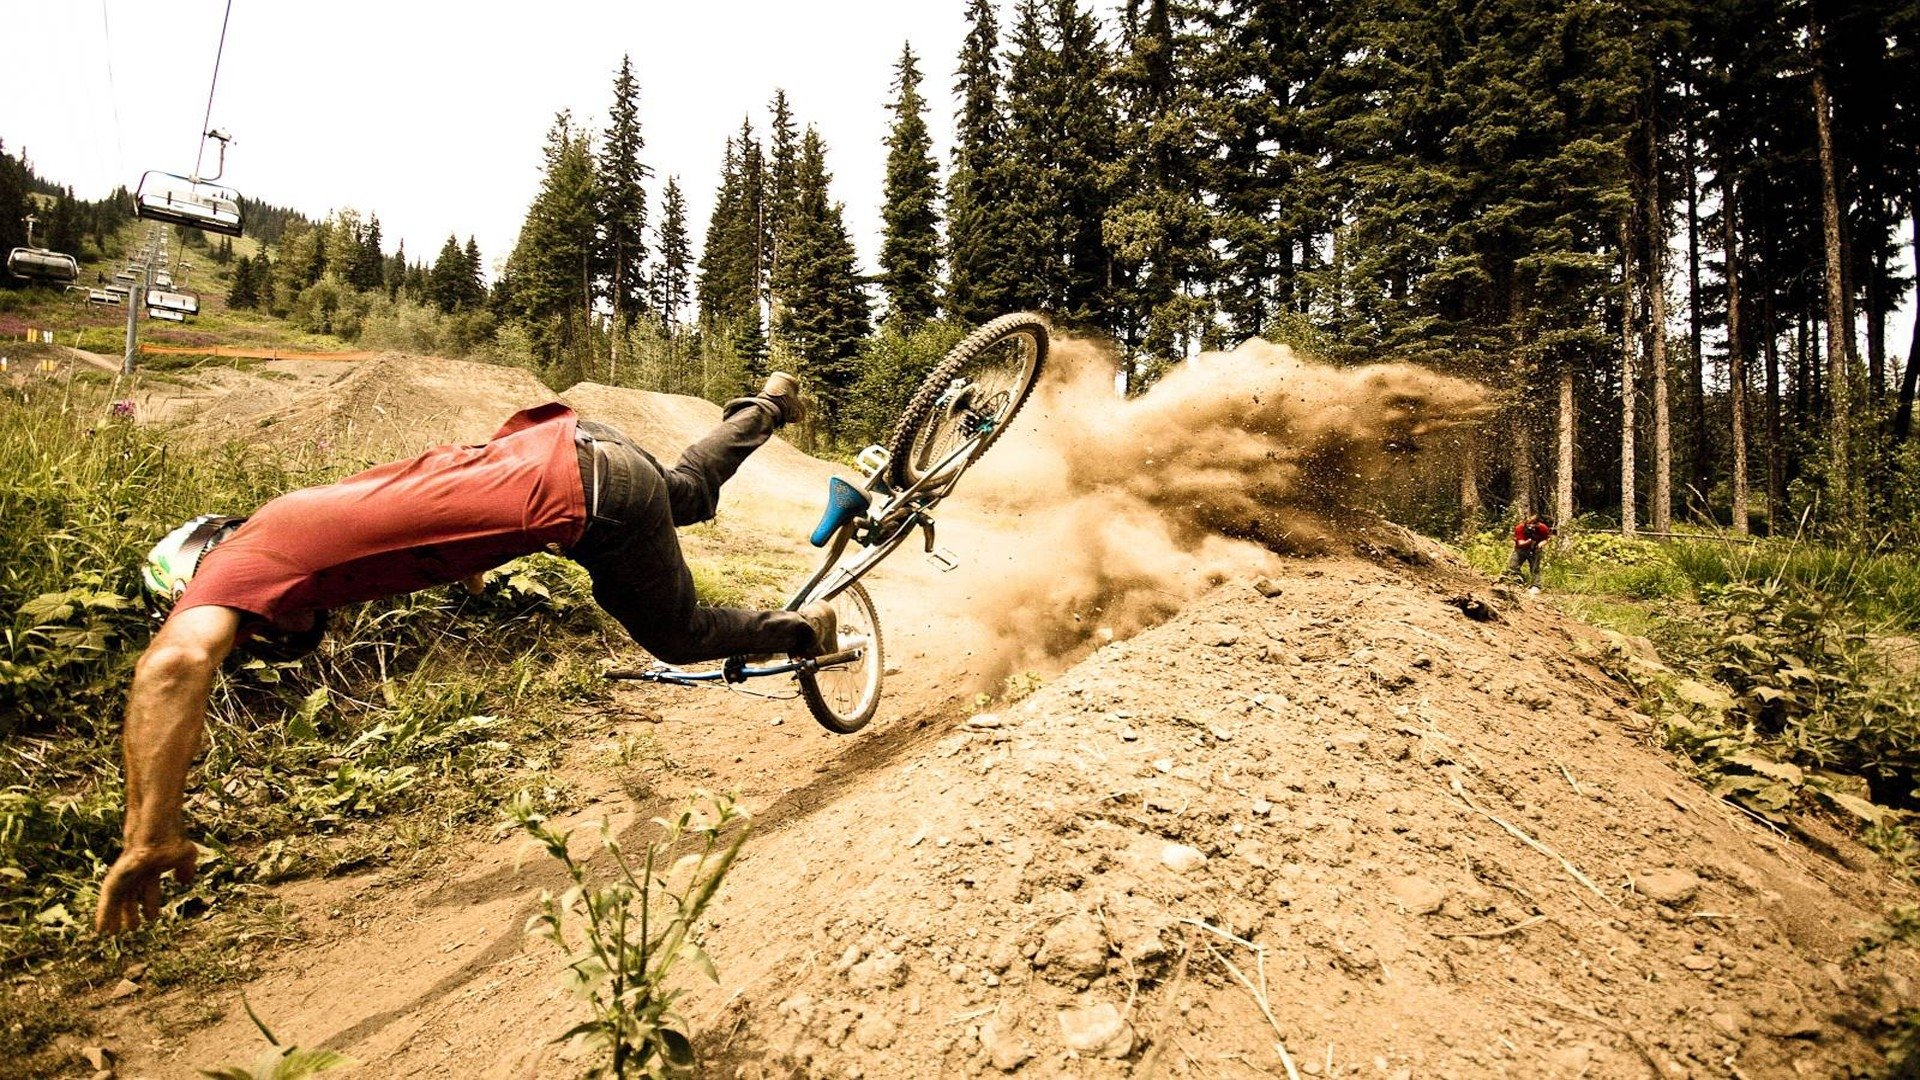 17 BMX HD Wallpapers | Background Images - Wallpaper Abyss